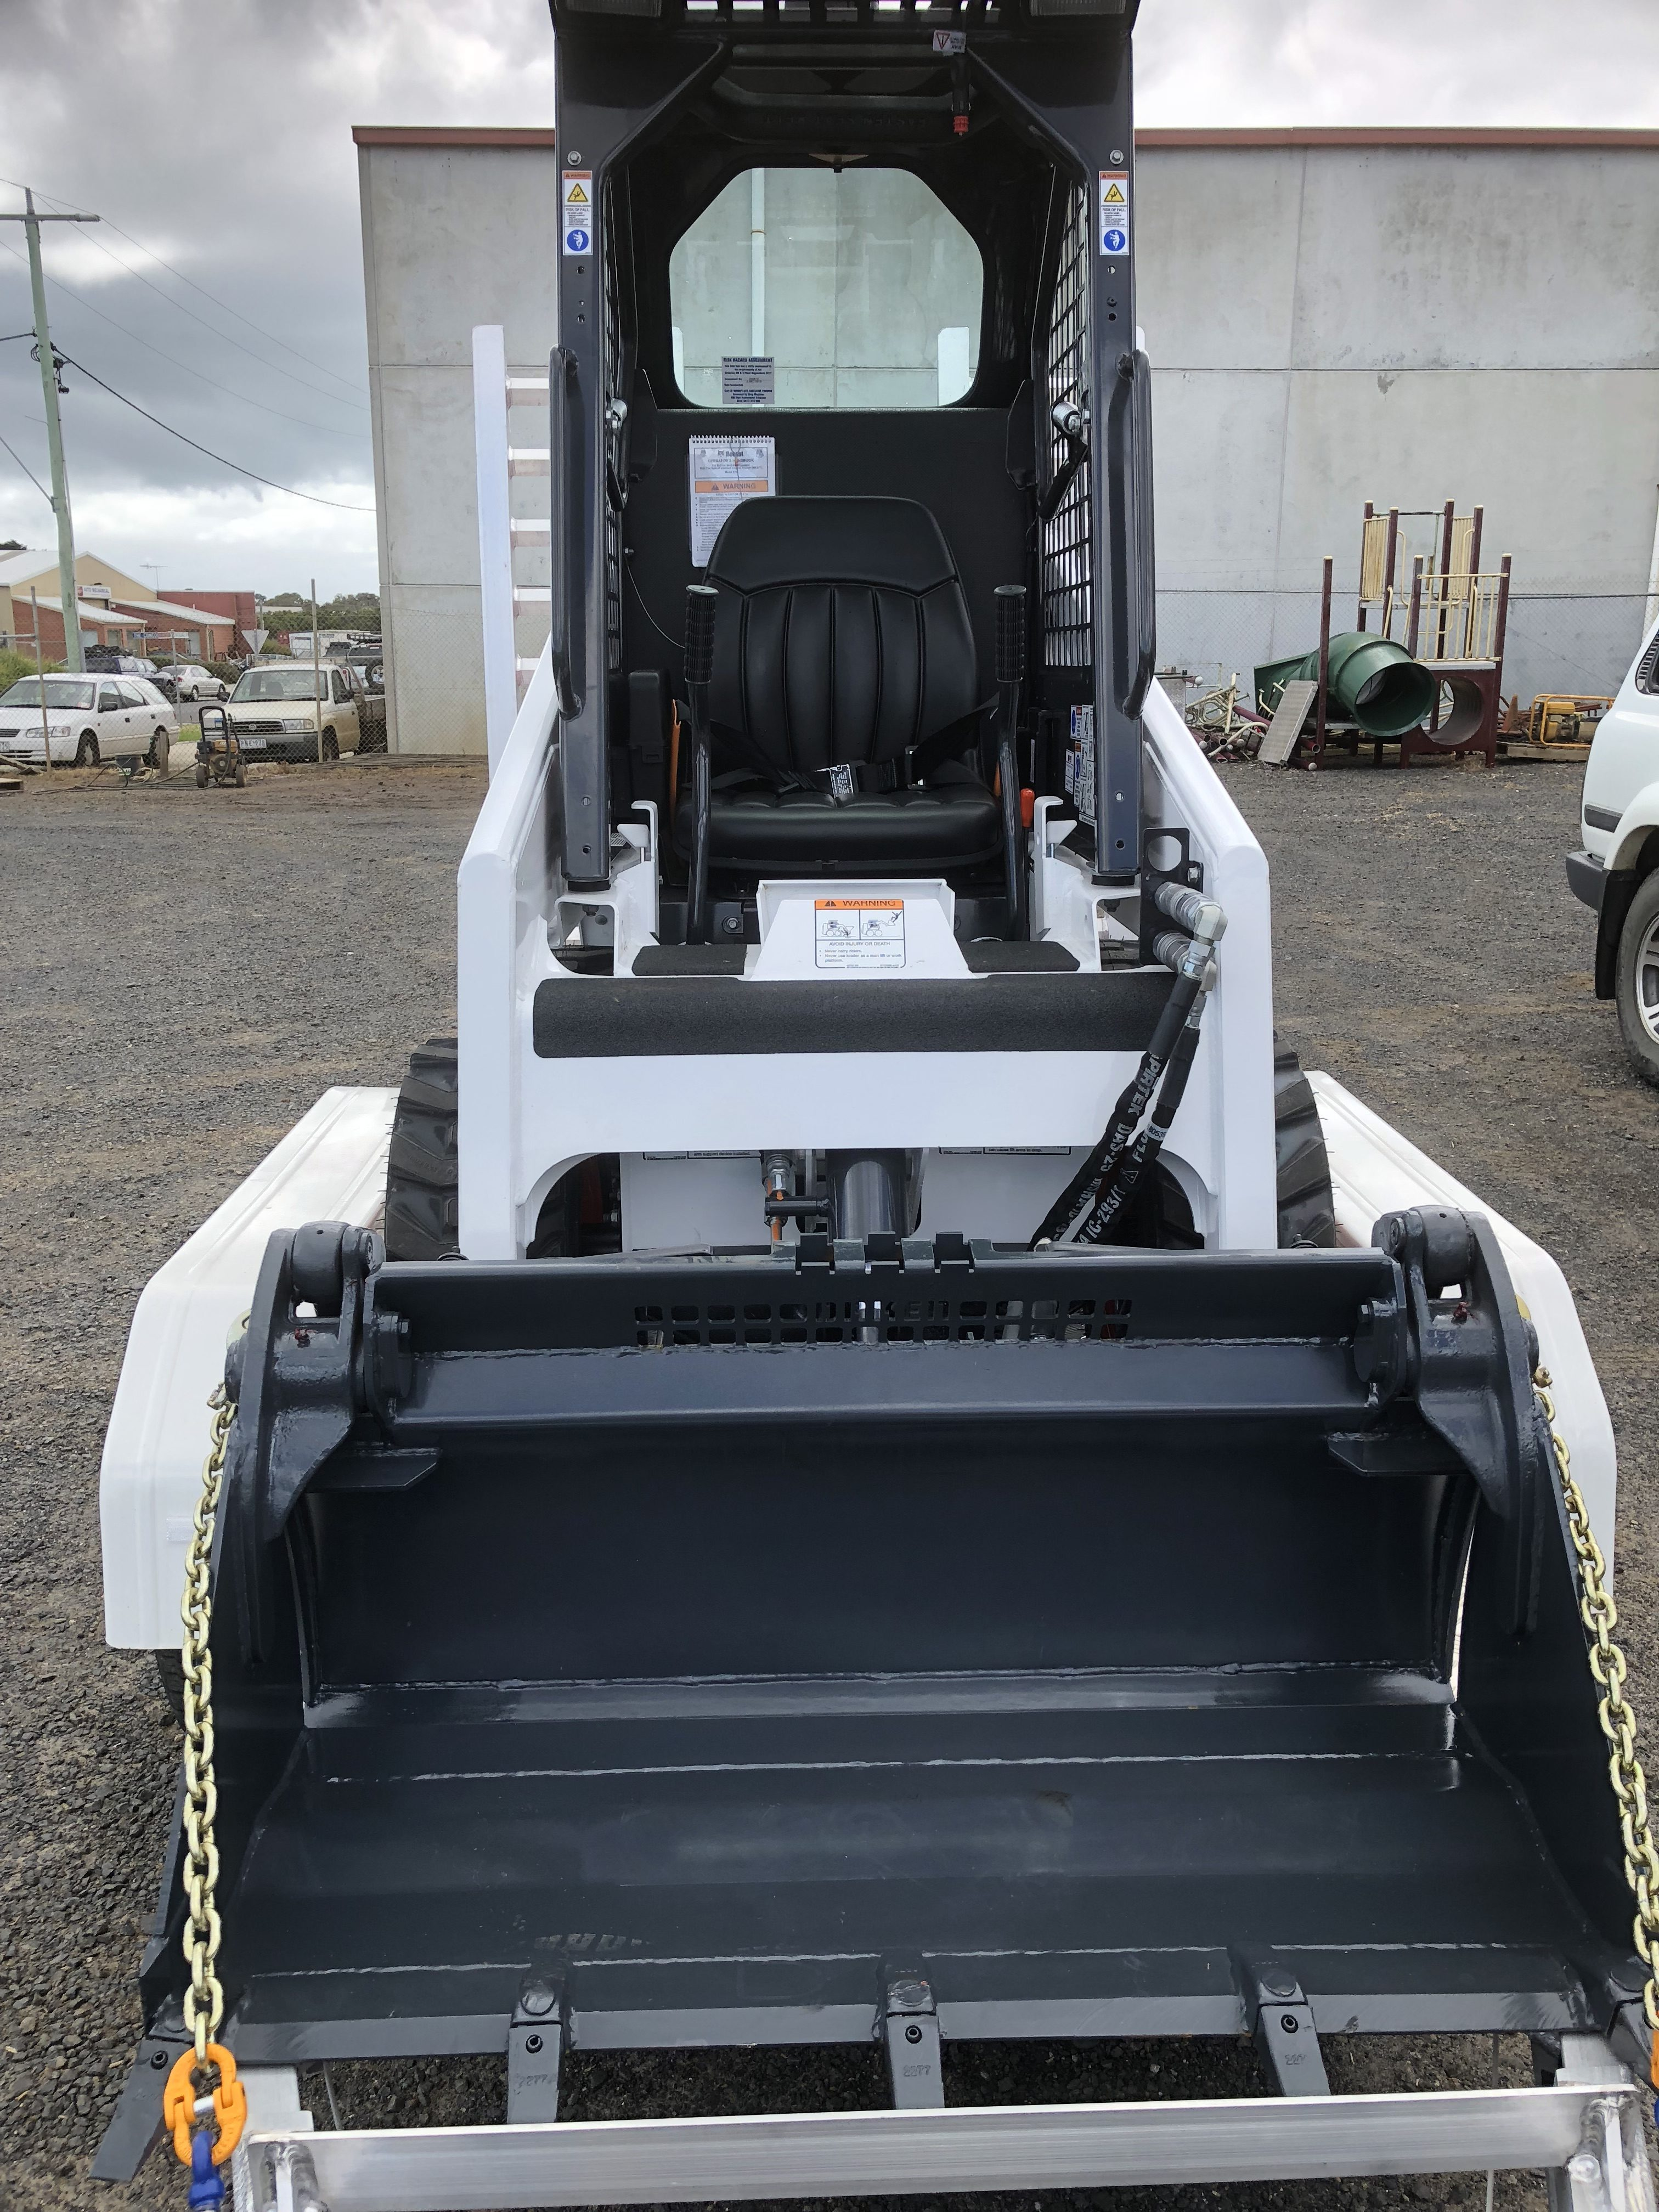 Bobcat s70skid steer